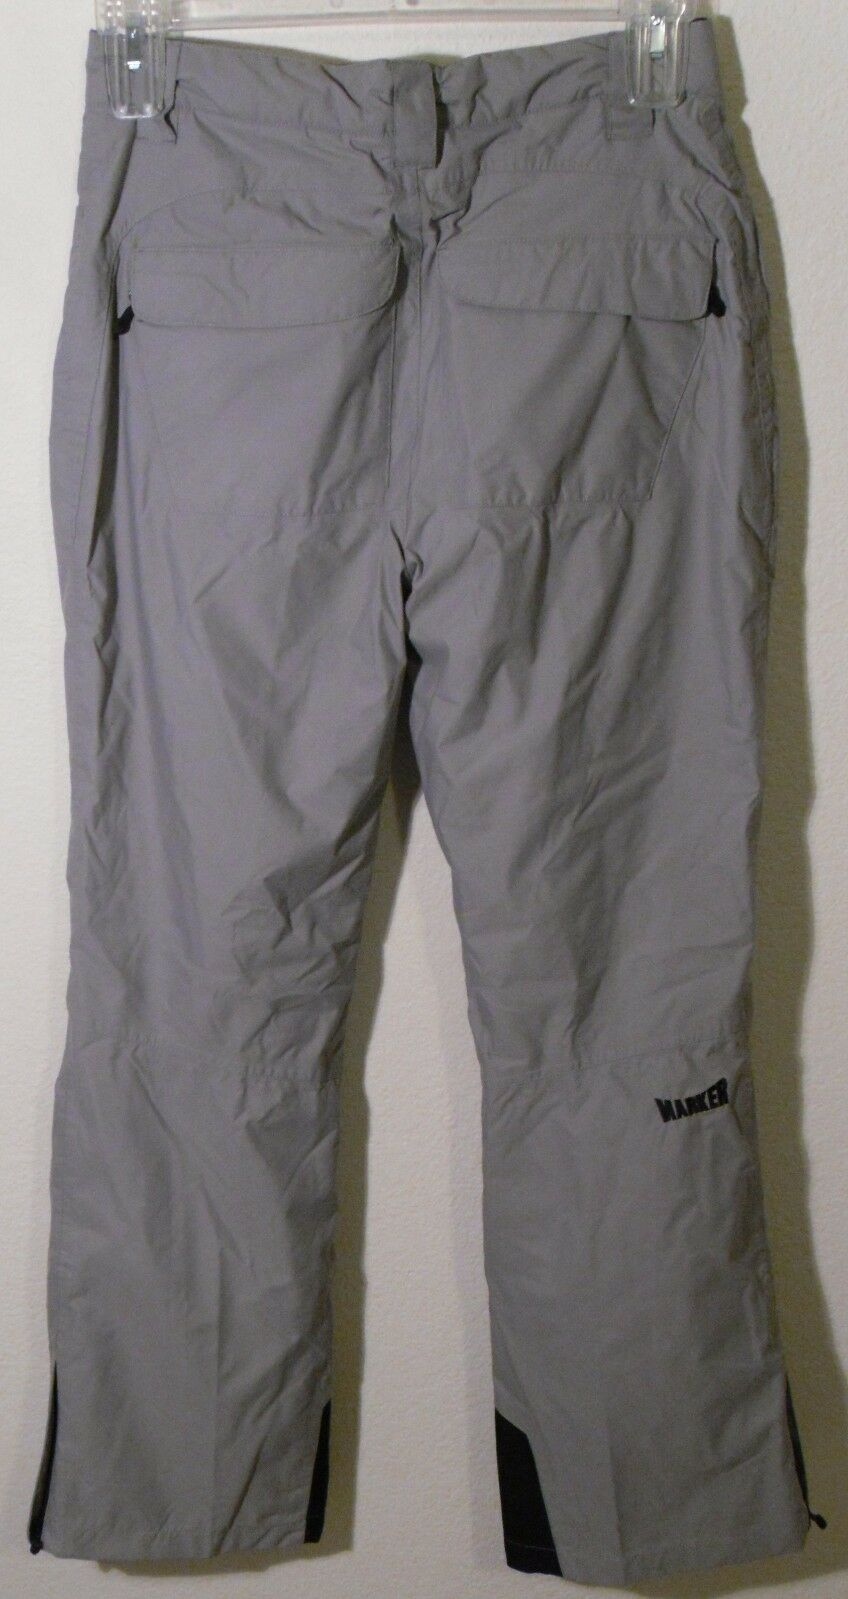 NWT Marker Pop 6 Damenschuhe Regular Rise Snowboard Ski Pants 6 Pop Grau MSRP139 3afa3a